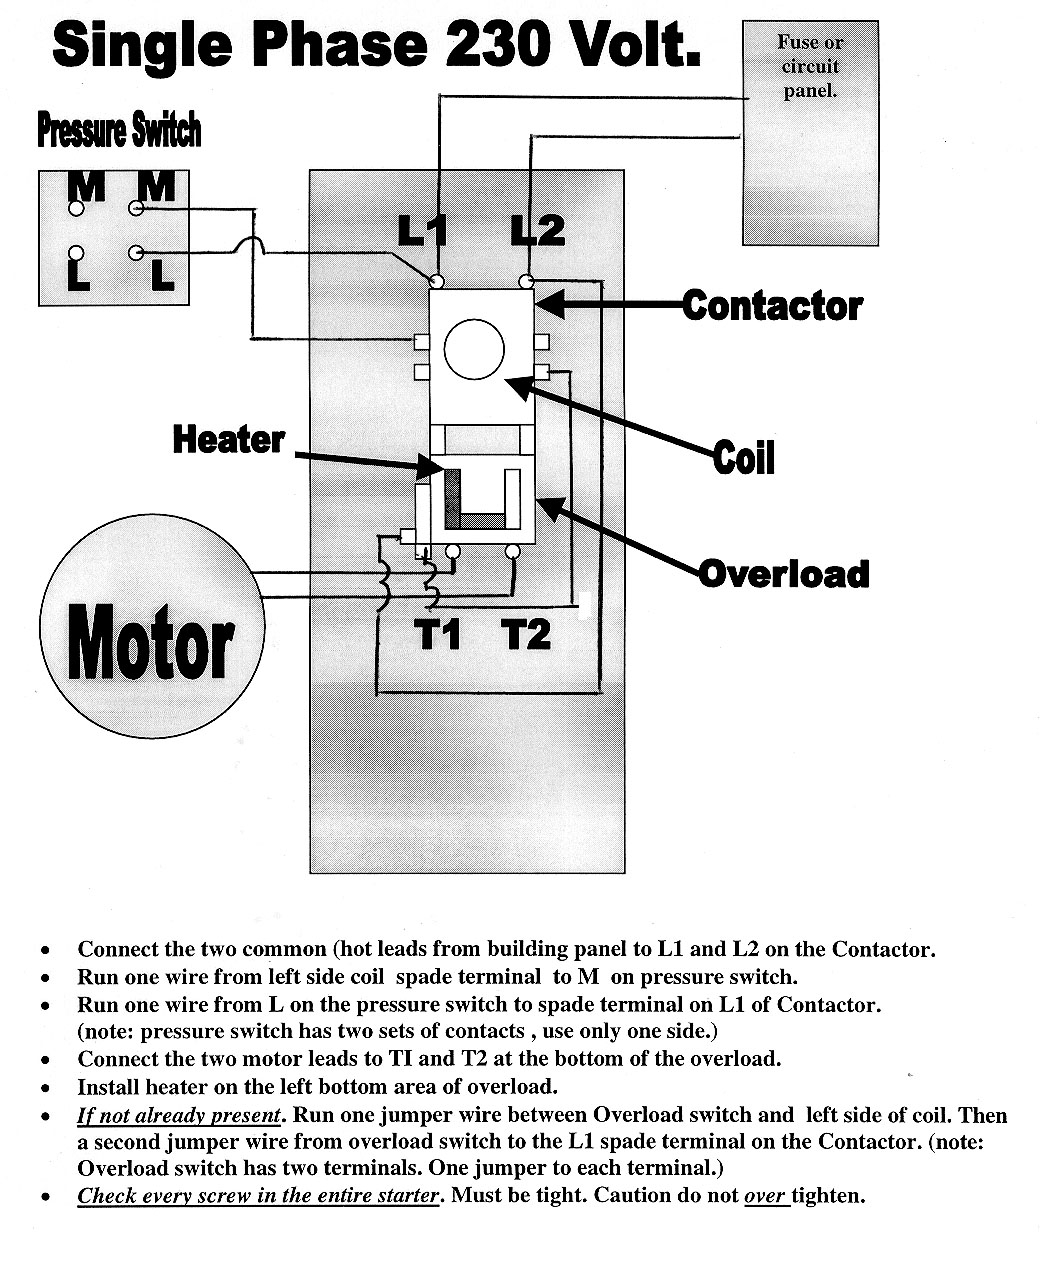 hight resolution of single phase motor starter wiring diagram pdf collection fancy electric motor wiring diagram single phase download wiring diagram